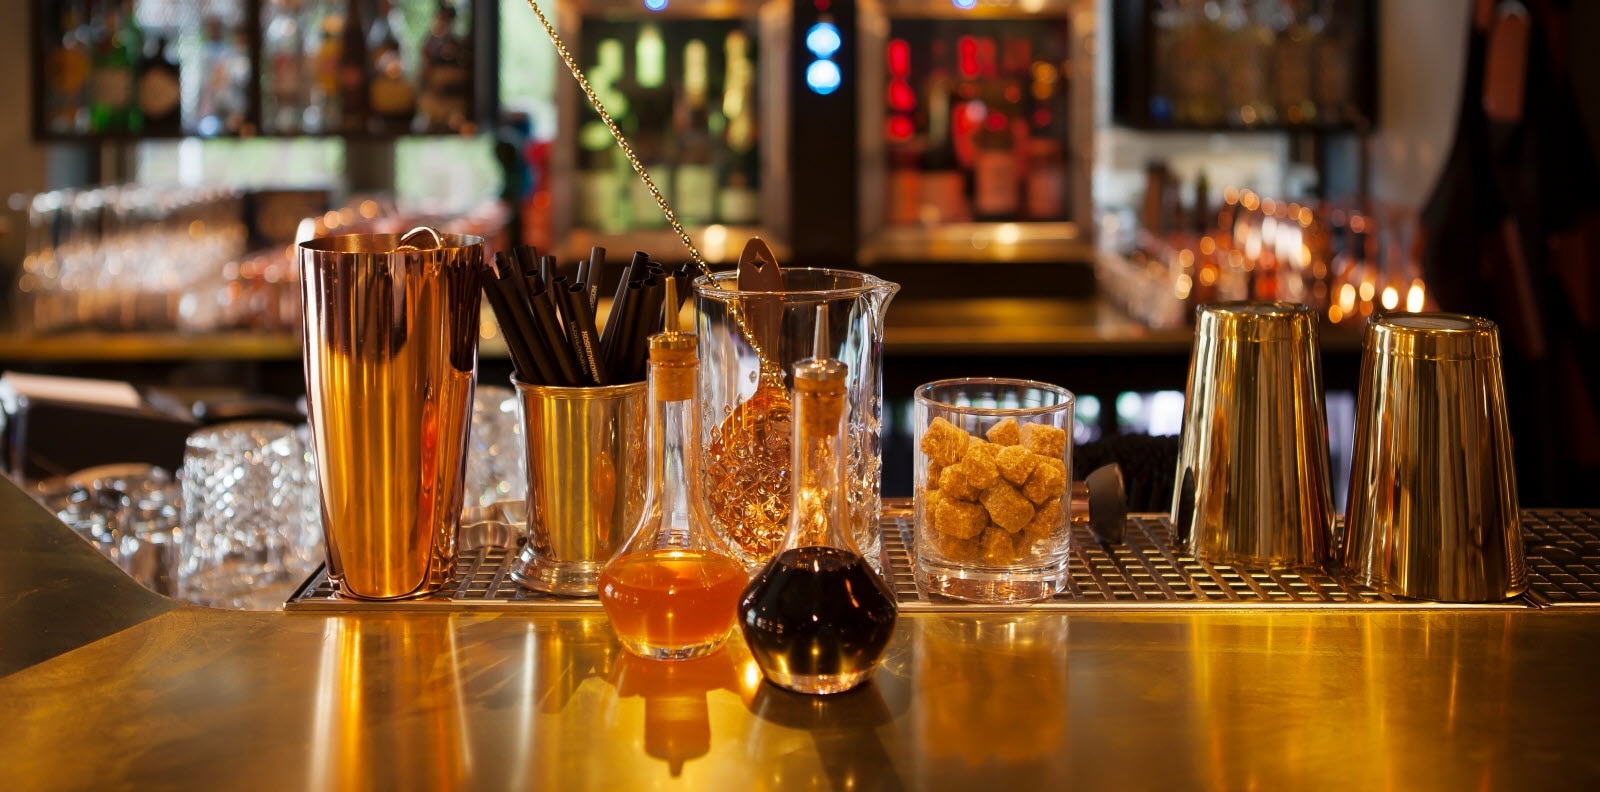 Snacks og drinkeglass i baren, Scandic St. Olavs plass